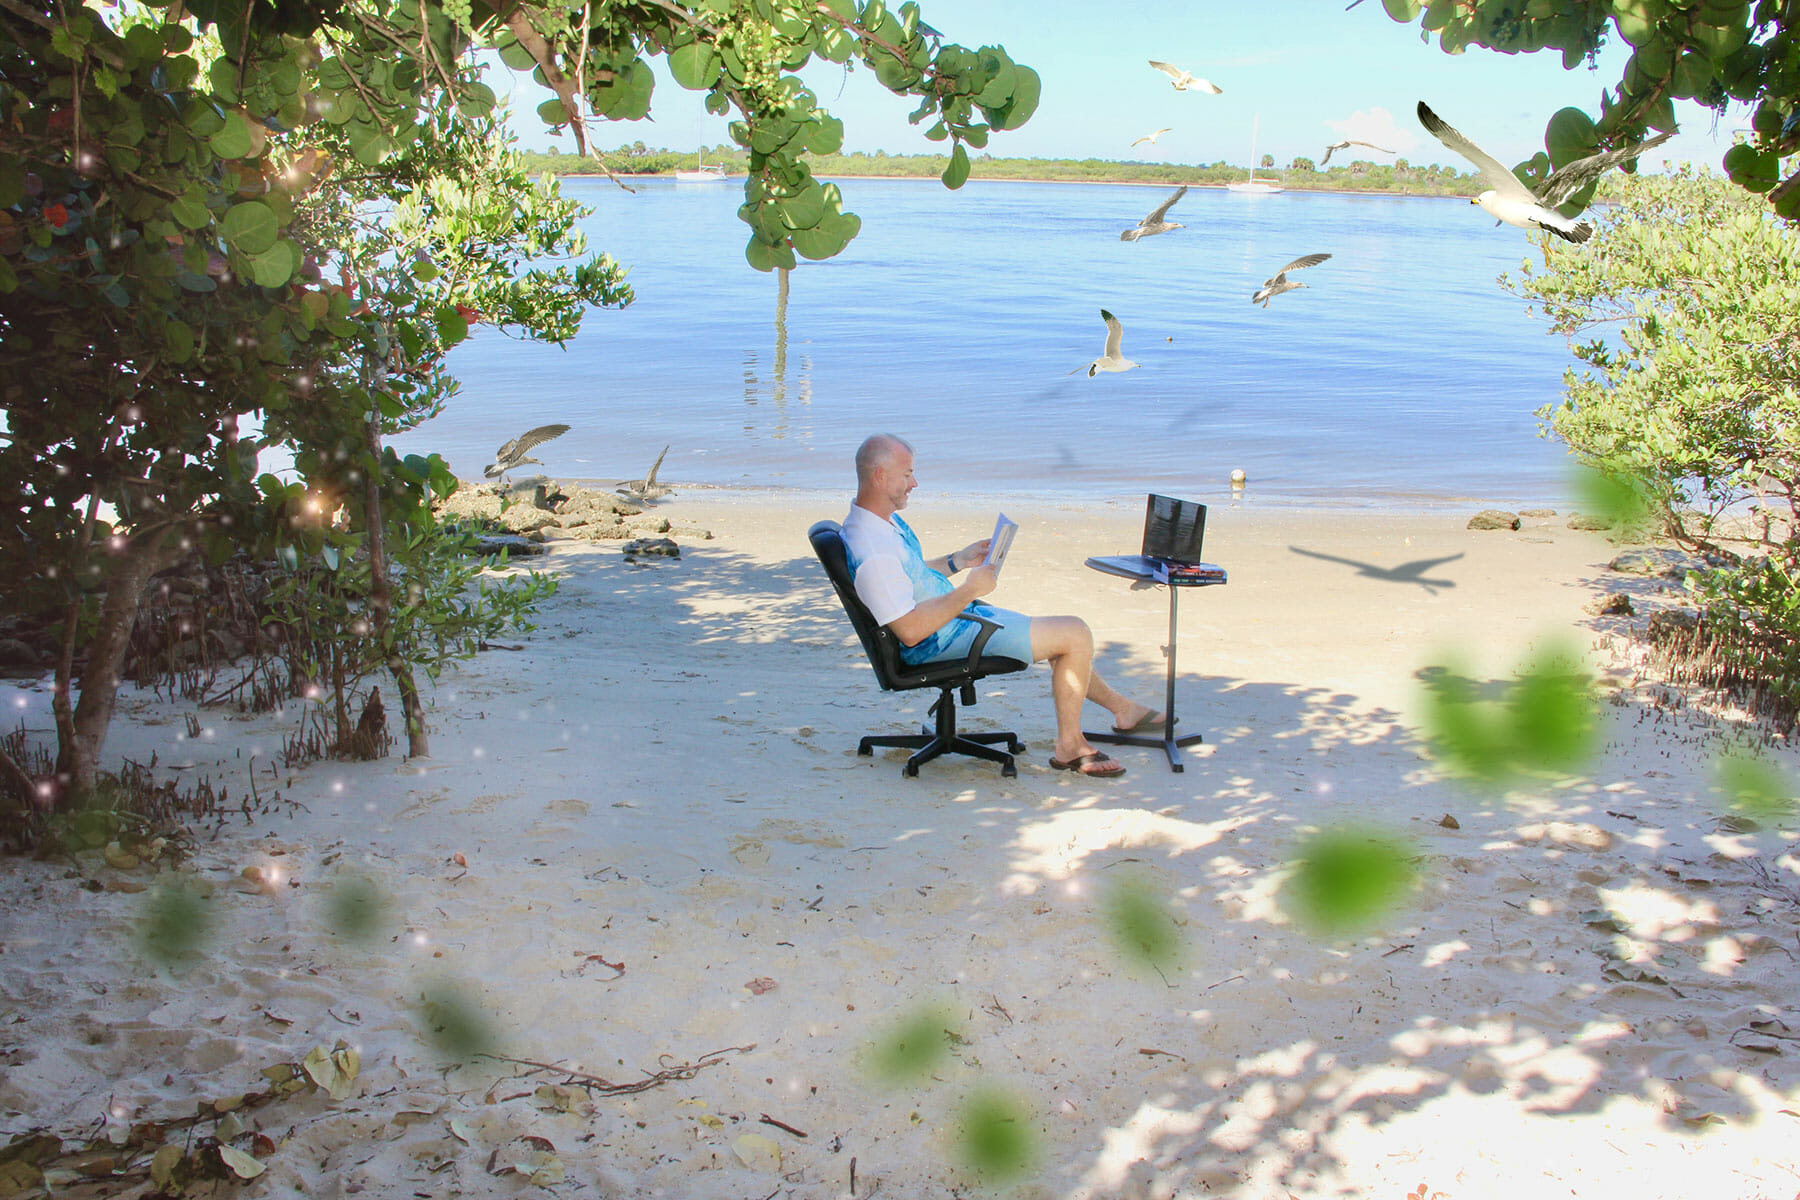 SeanDon reading and writing while relaxing on a private beach